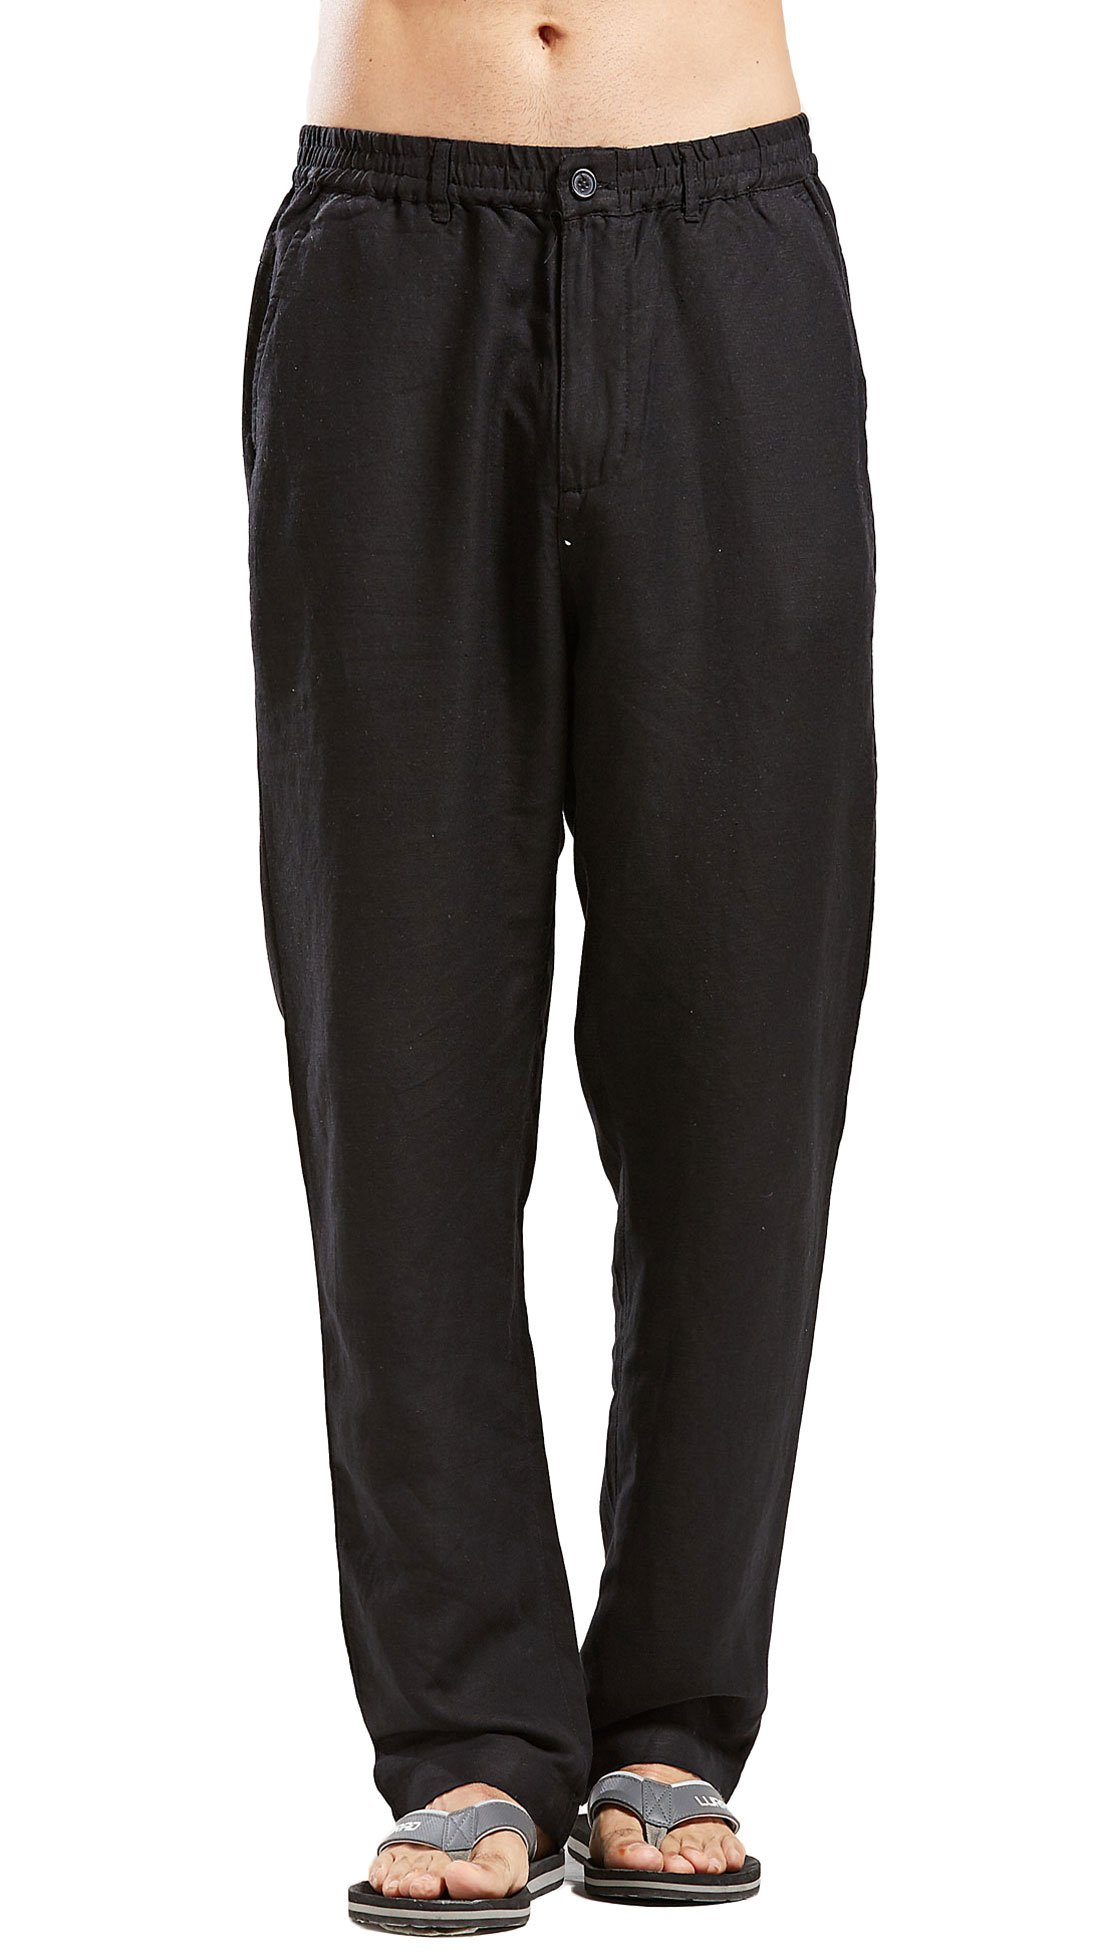 Chartou Man's Summer Casual Stretched Waist Loose Fit Linen Beach Pants (XX-Large, Black)